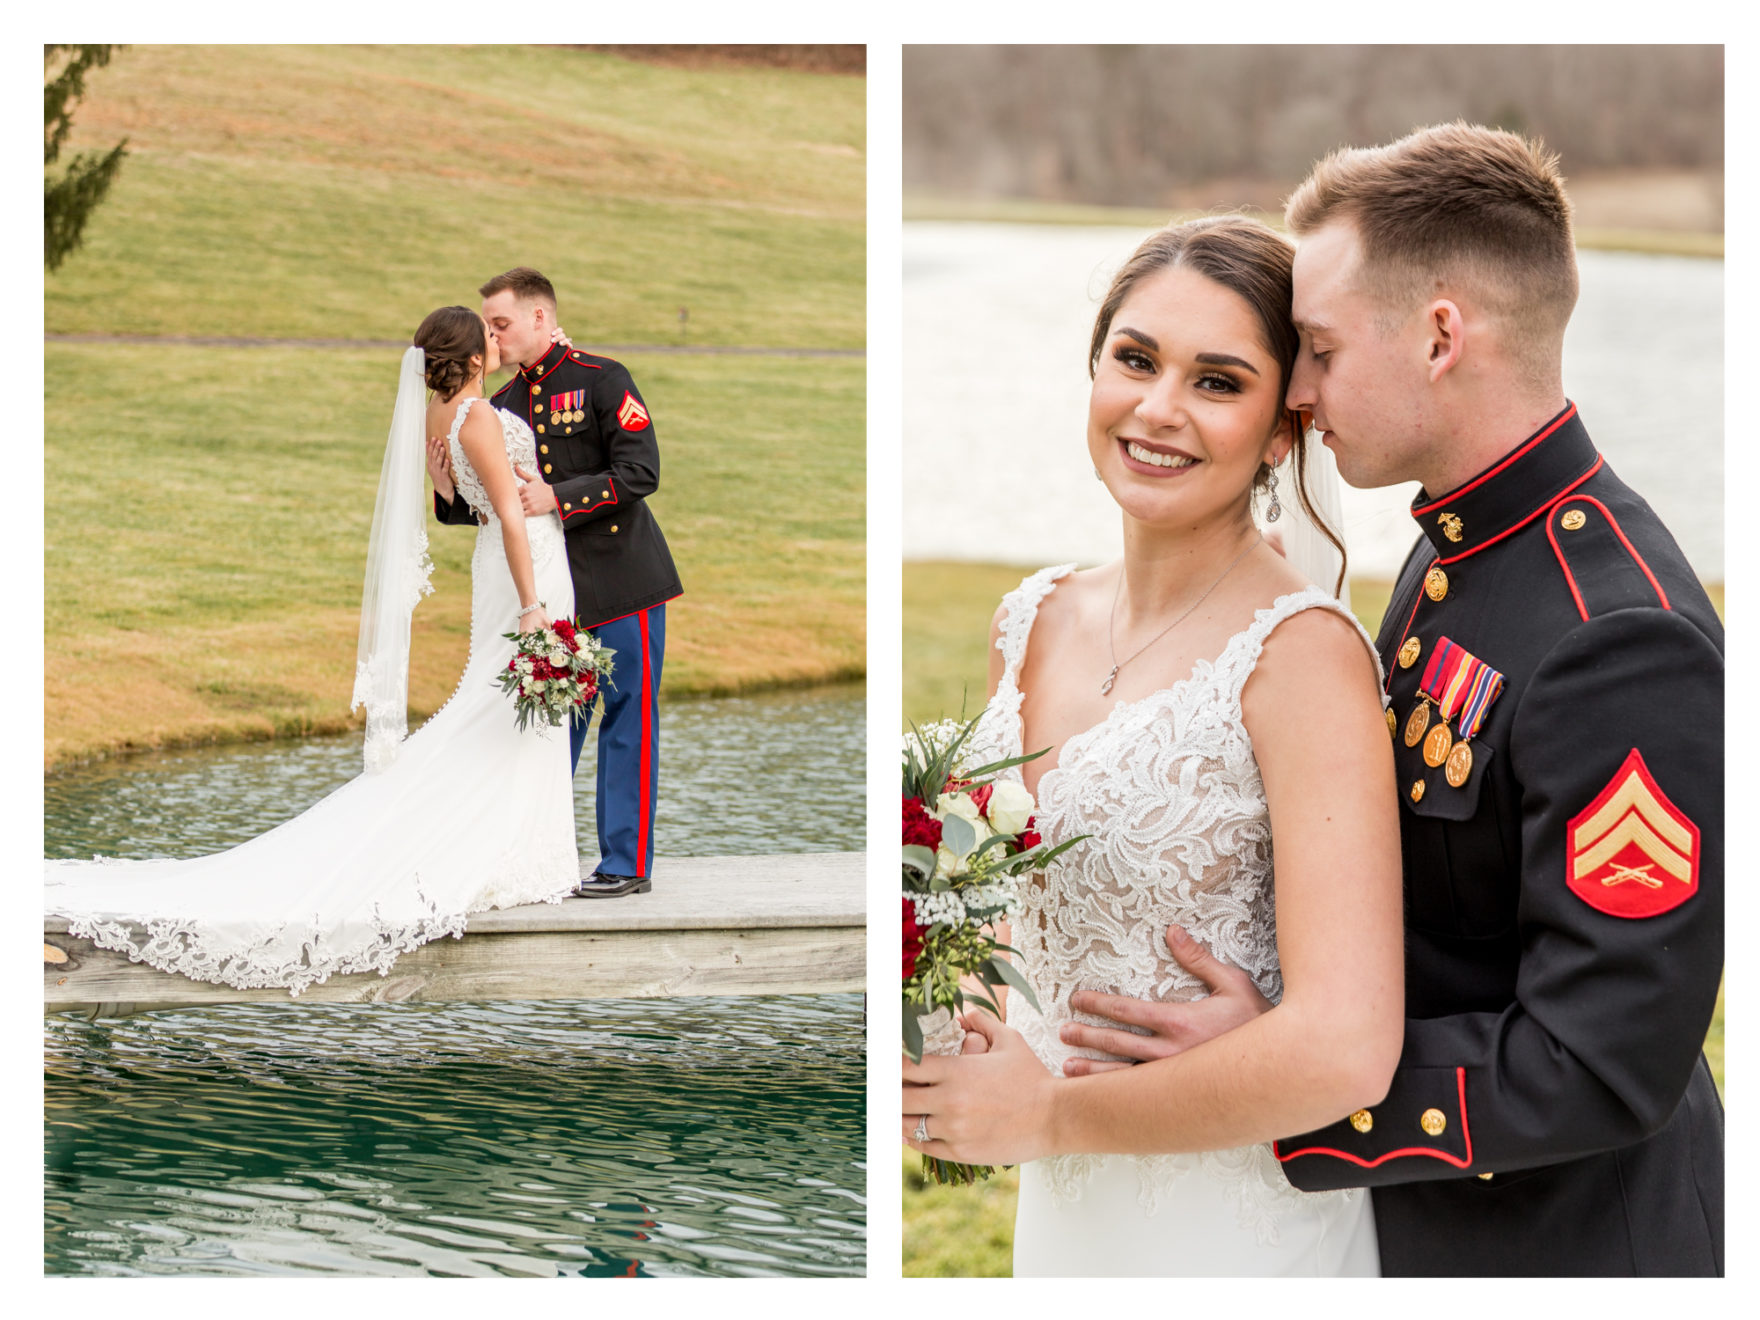 Winter Wedding. Warm winter wedding. Forest Hill Maryland. Fallston Maryland. Military Wedding. Marine Wedding. Stone Ridge Hollow. Barn Wedding. Farm Wedding.